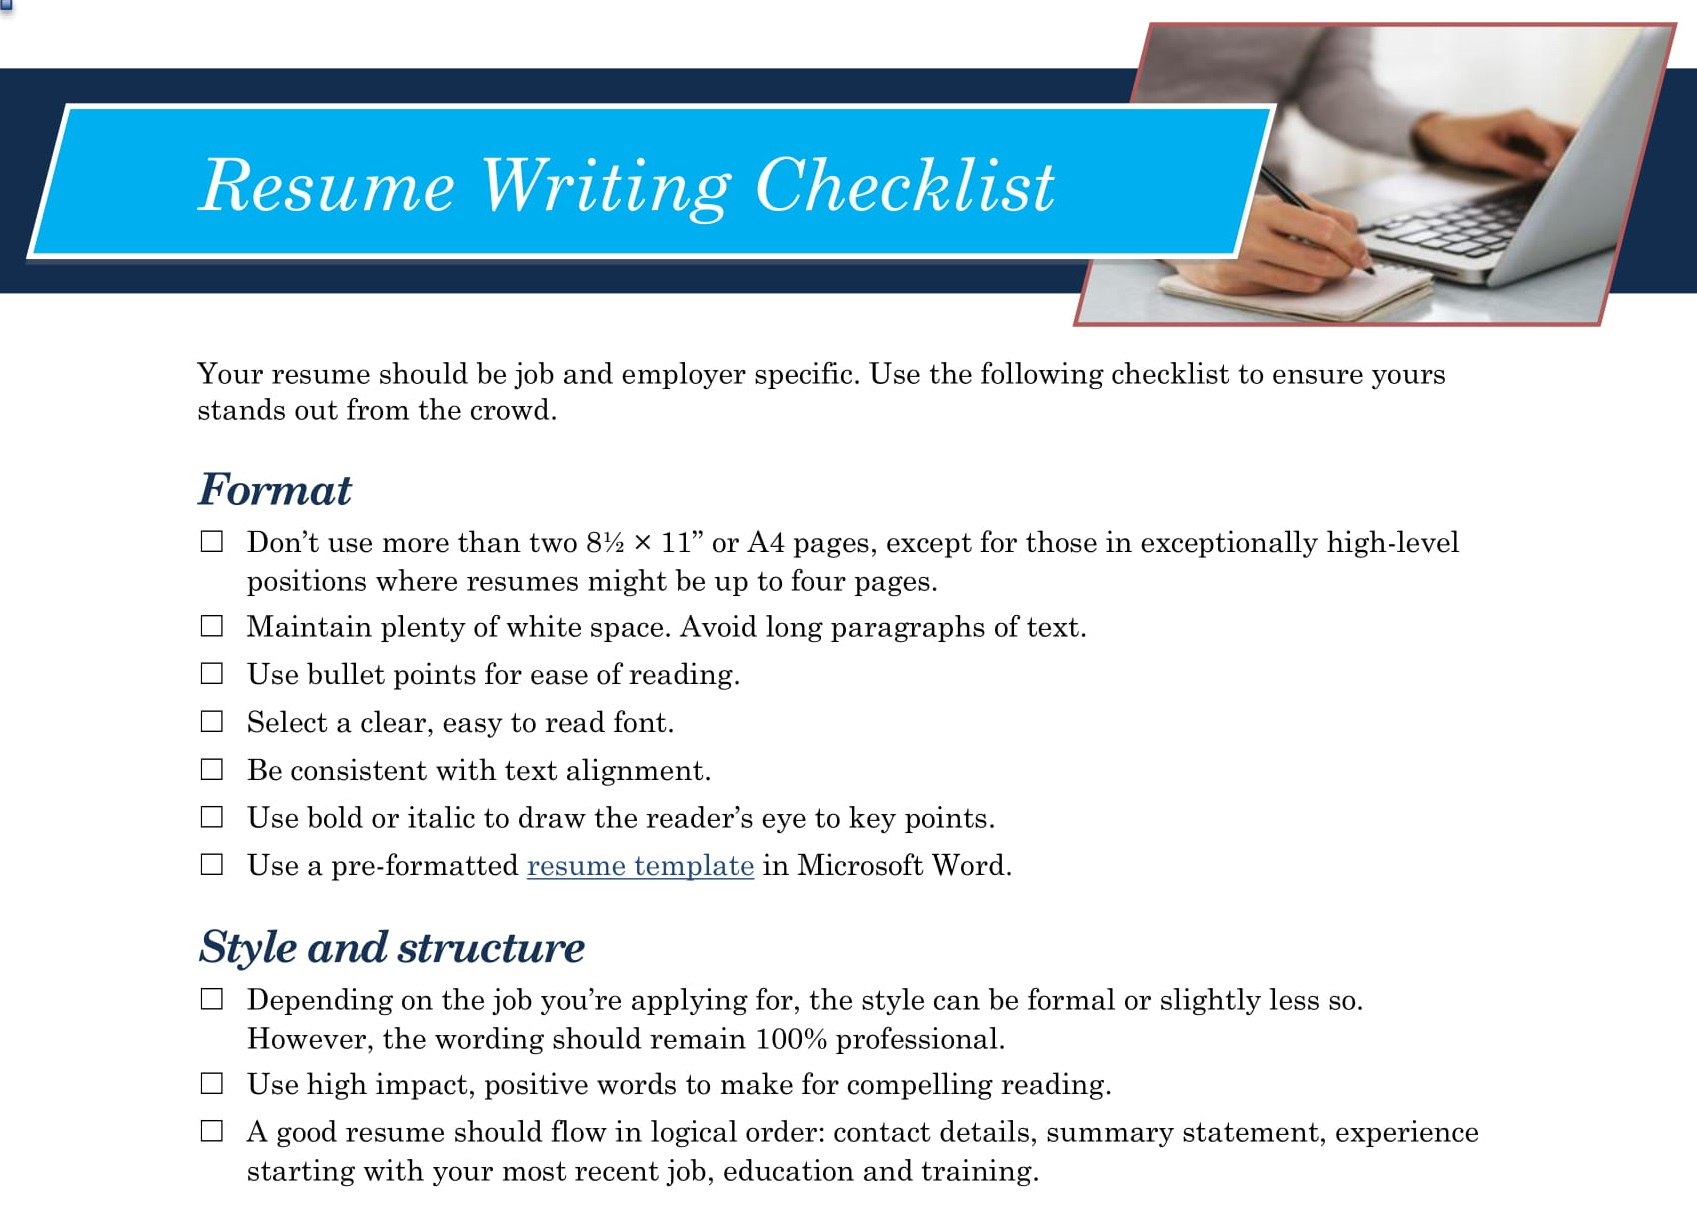 resume writing checklist learn content copy office administrator examples skills template Resume Resume Writing Checklist